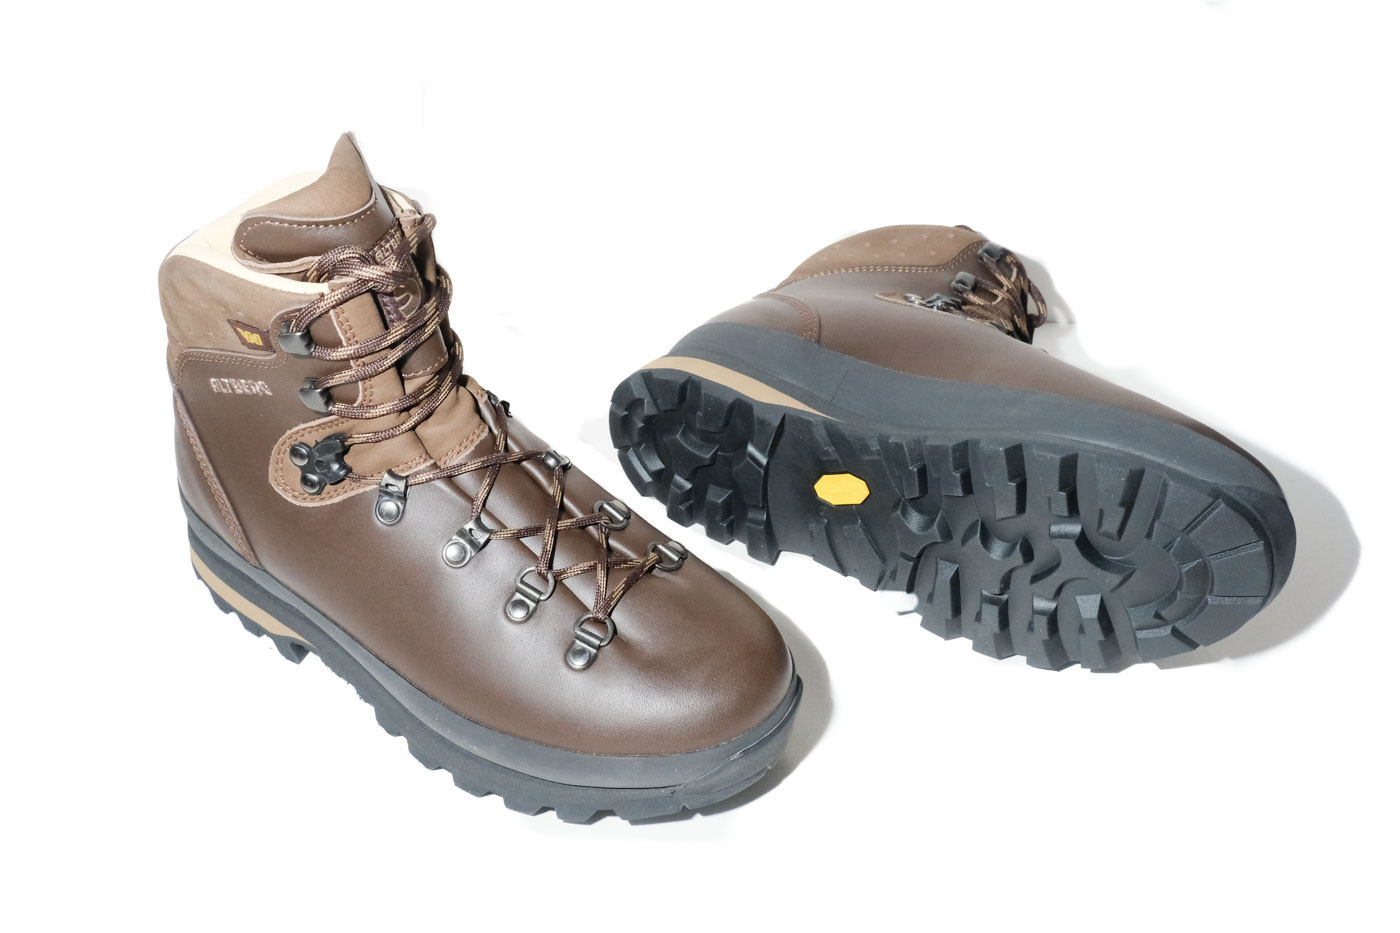 e3ae21558c2 Review: Alt-Berg Tethera Boots | Walkhighlands